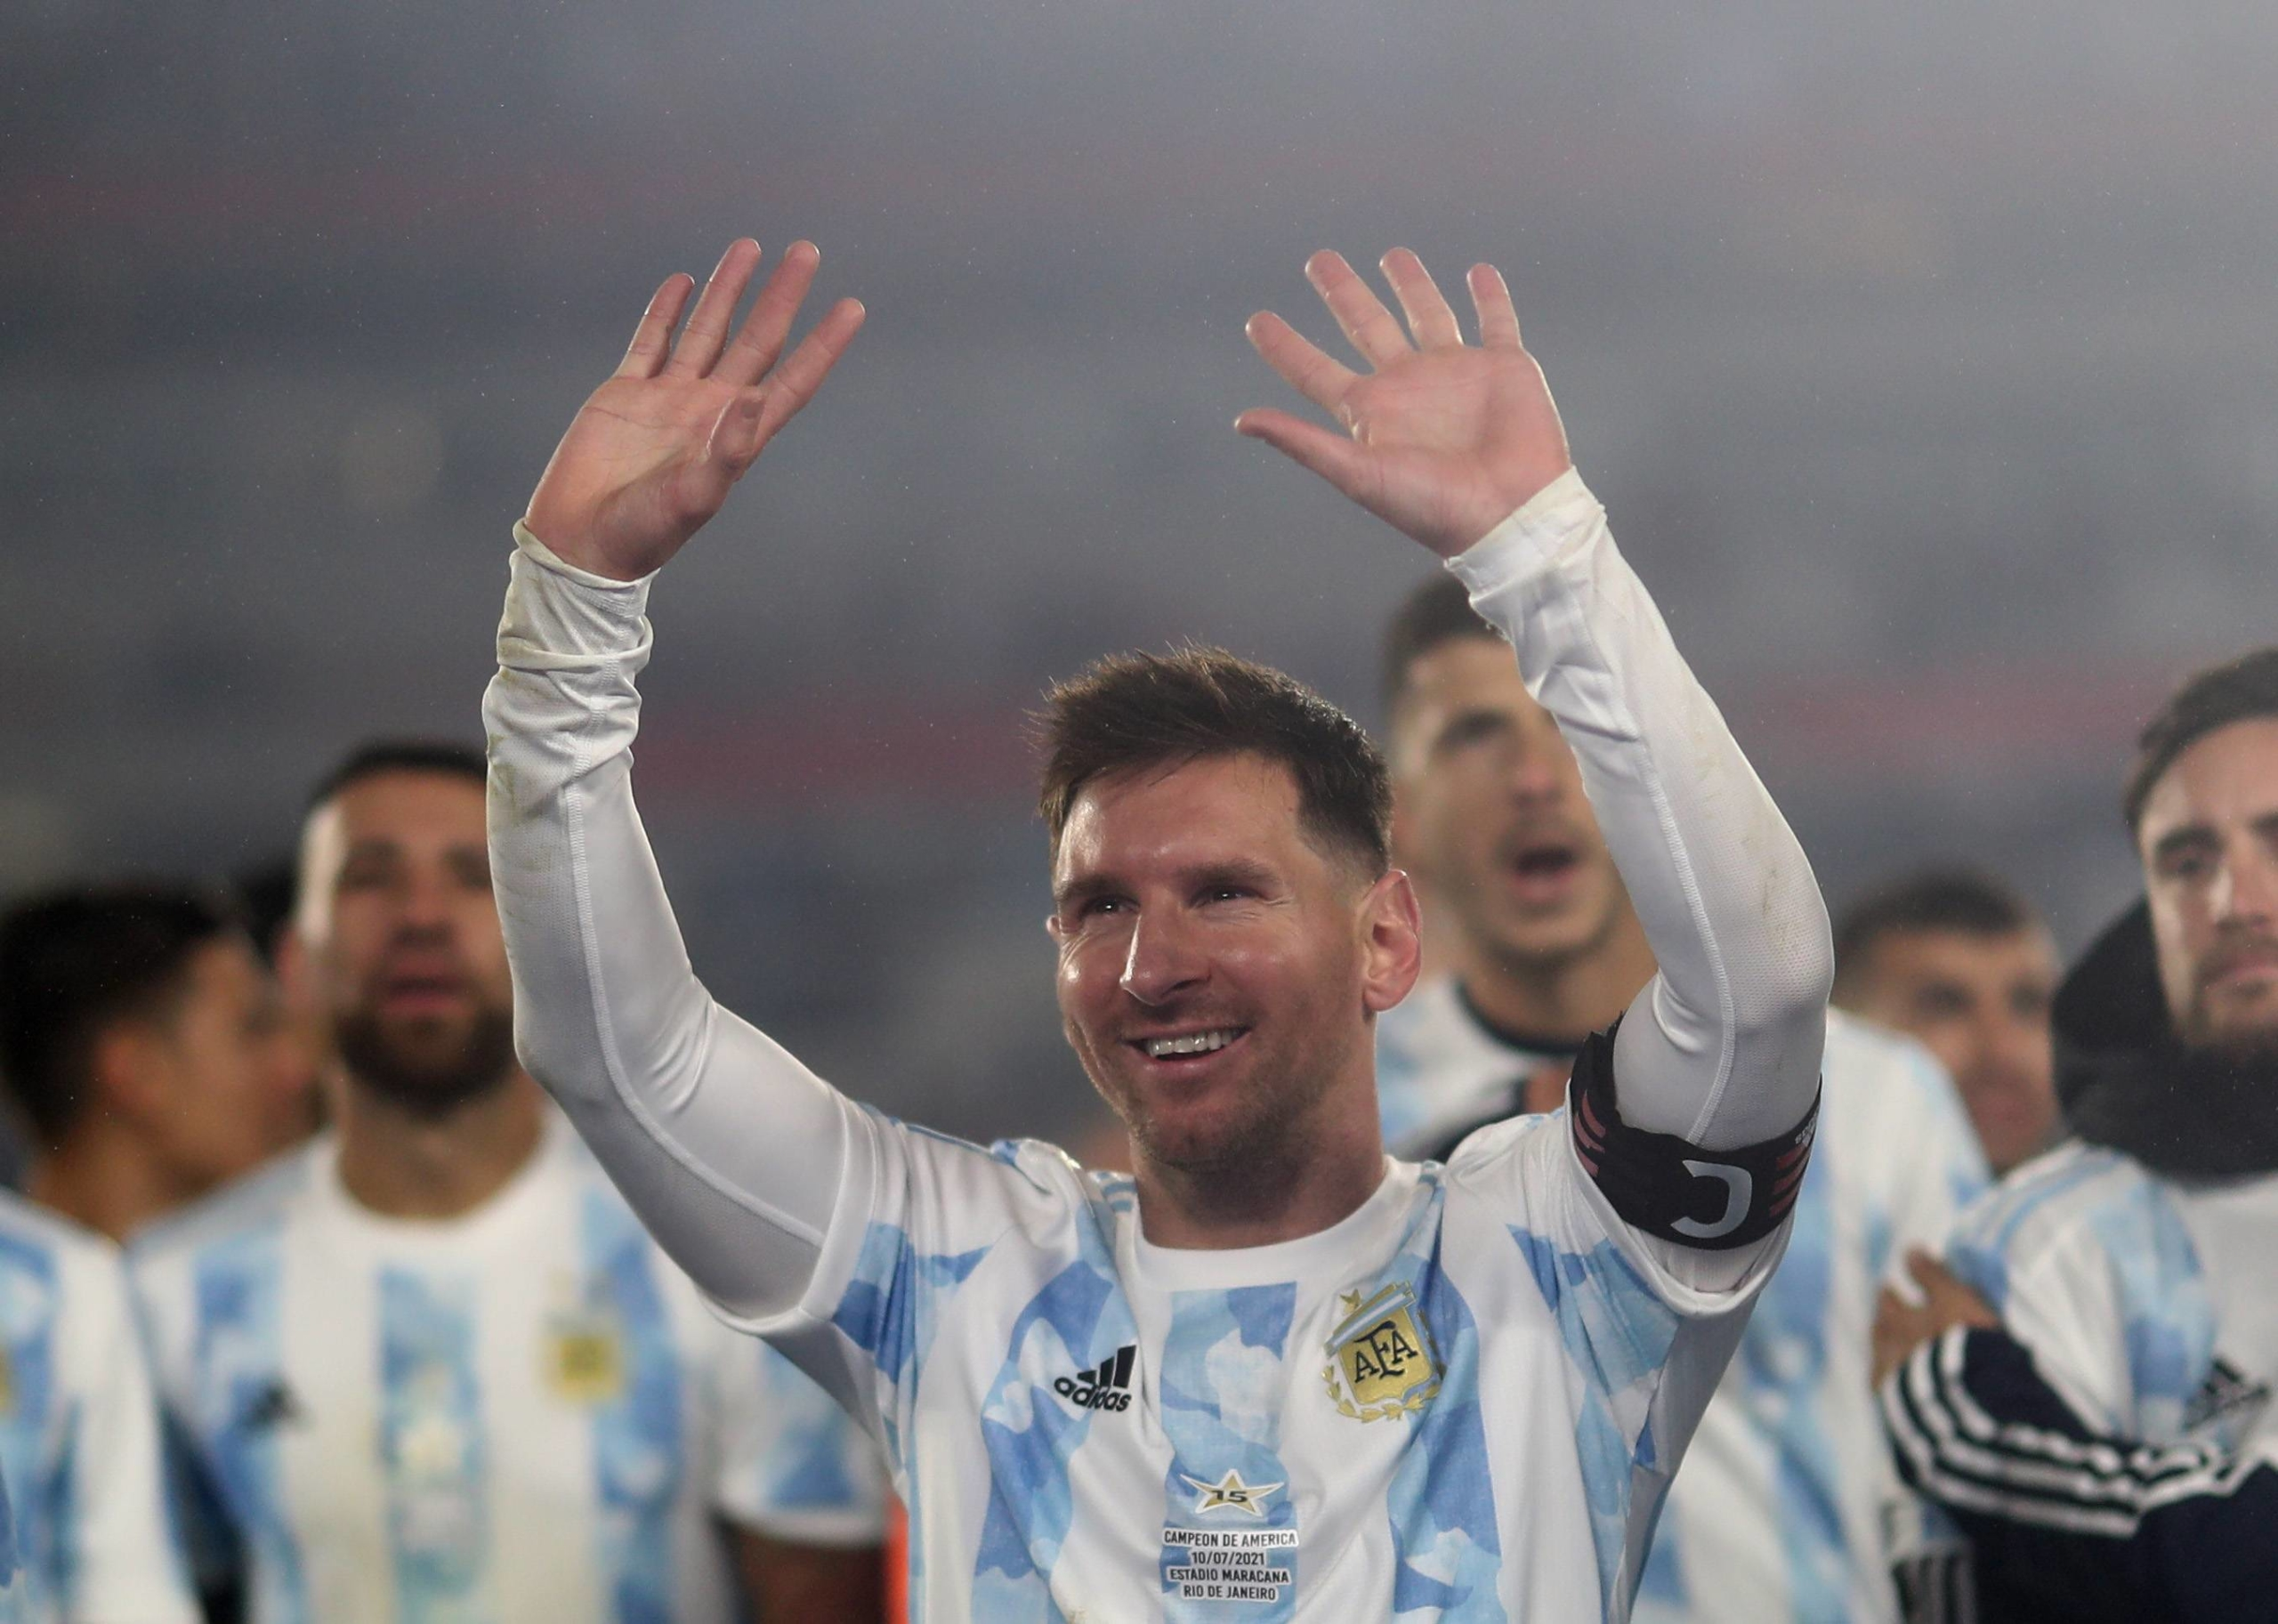 Lionel Messi celebrates following Argentina's win over Bolivia in their World Cup qualifier on Thursday in Buenos Aires.   POOL / VIA REUTERS